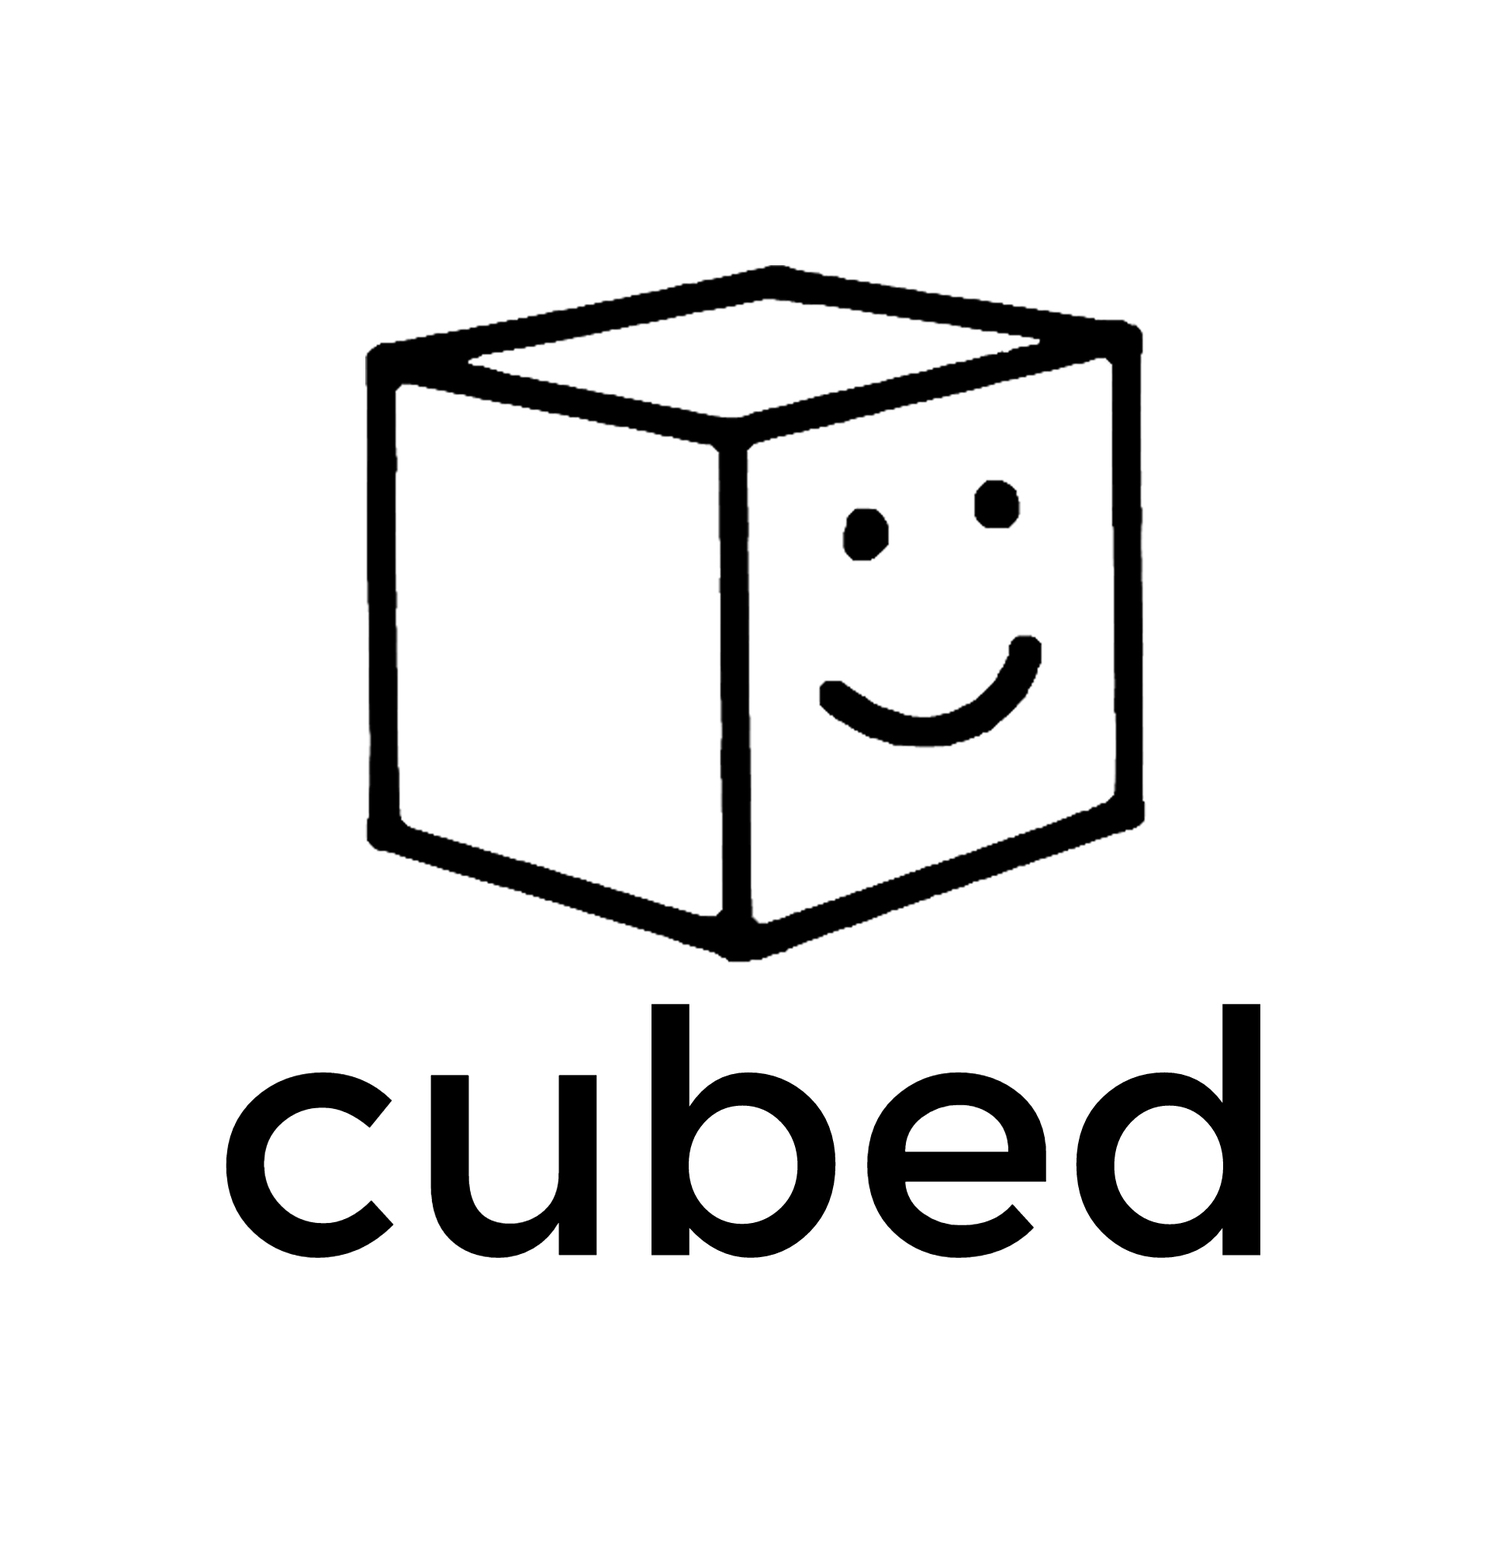 Gallery — Cubed